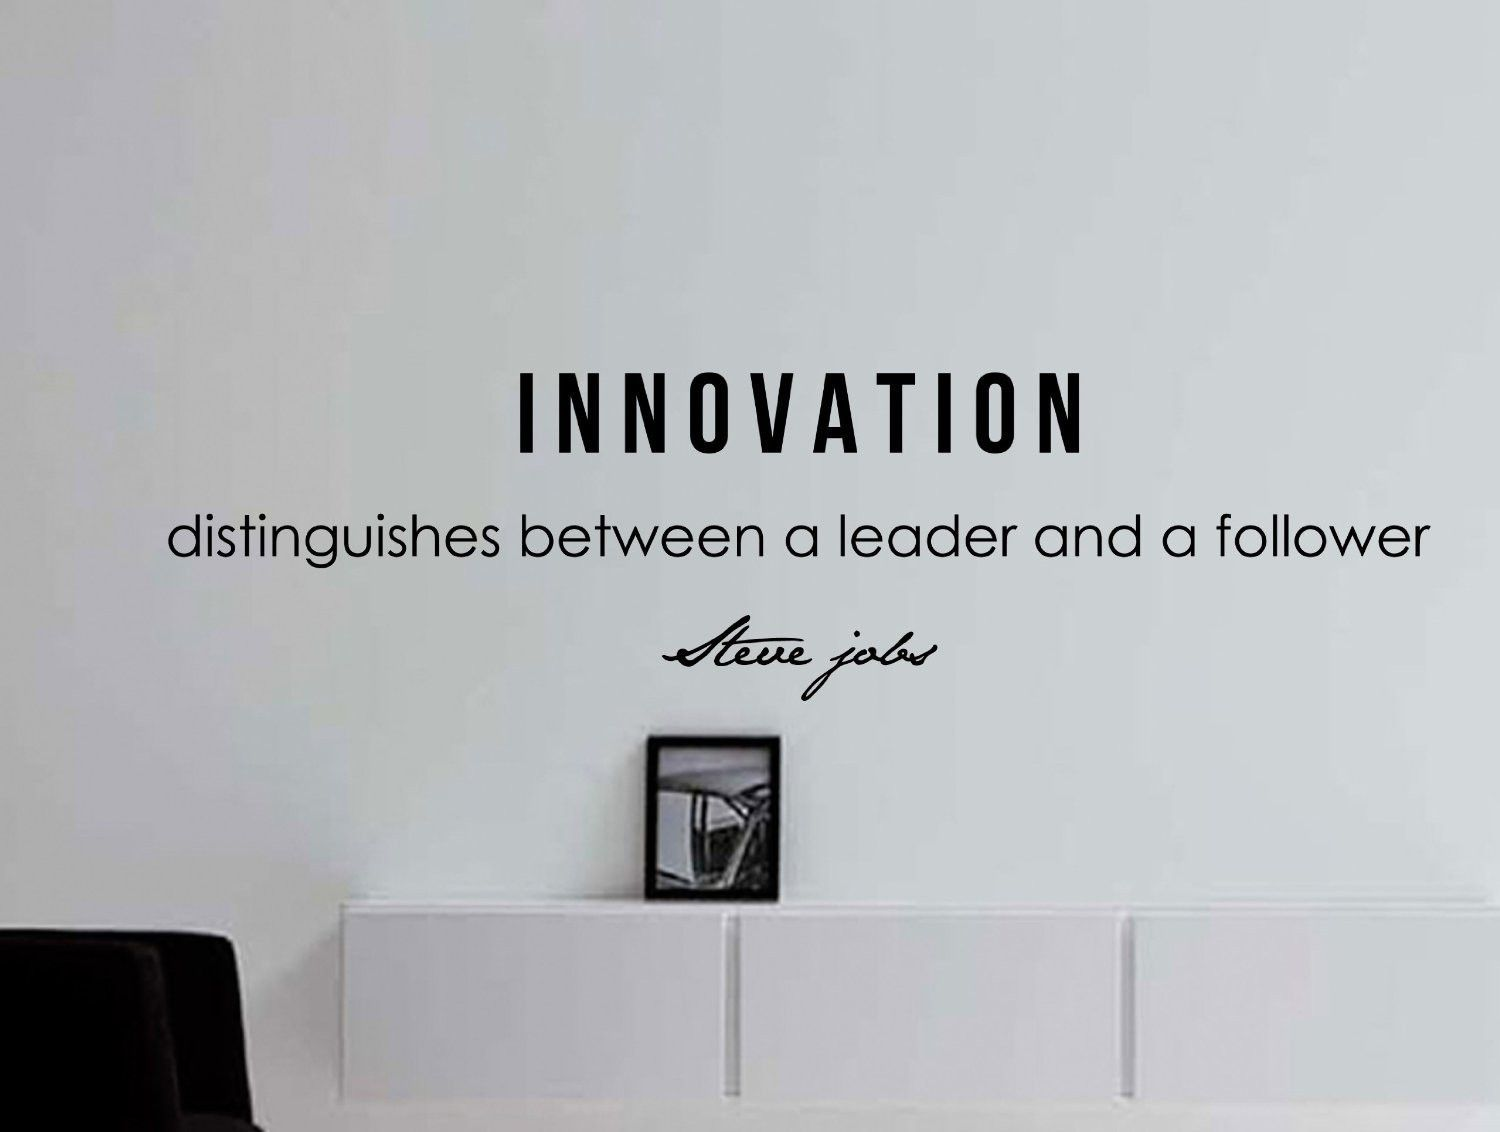 Steve Jobs Motivational Business Quote Wall Decal  Innovation Distinguishes Between a Leader and a Follower   sc 1 st  Pinterest & Steve Jobs Motivational Business Quote Wall Decal | Pinterest ...